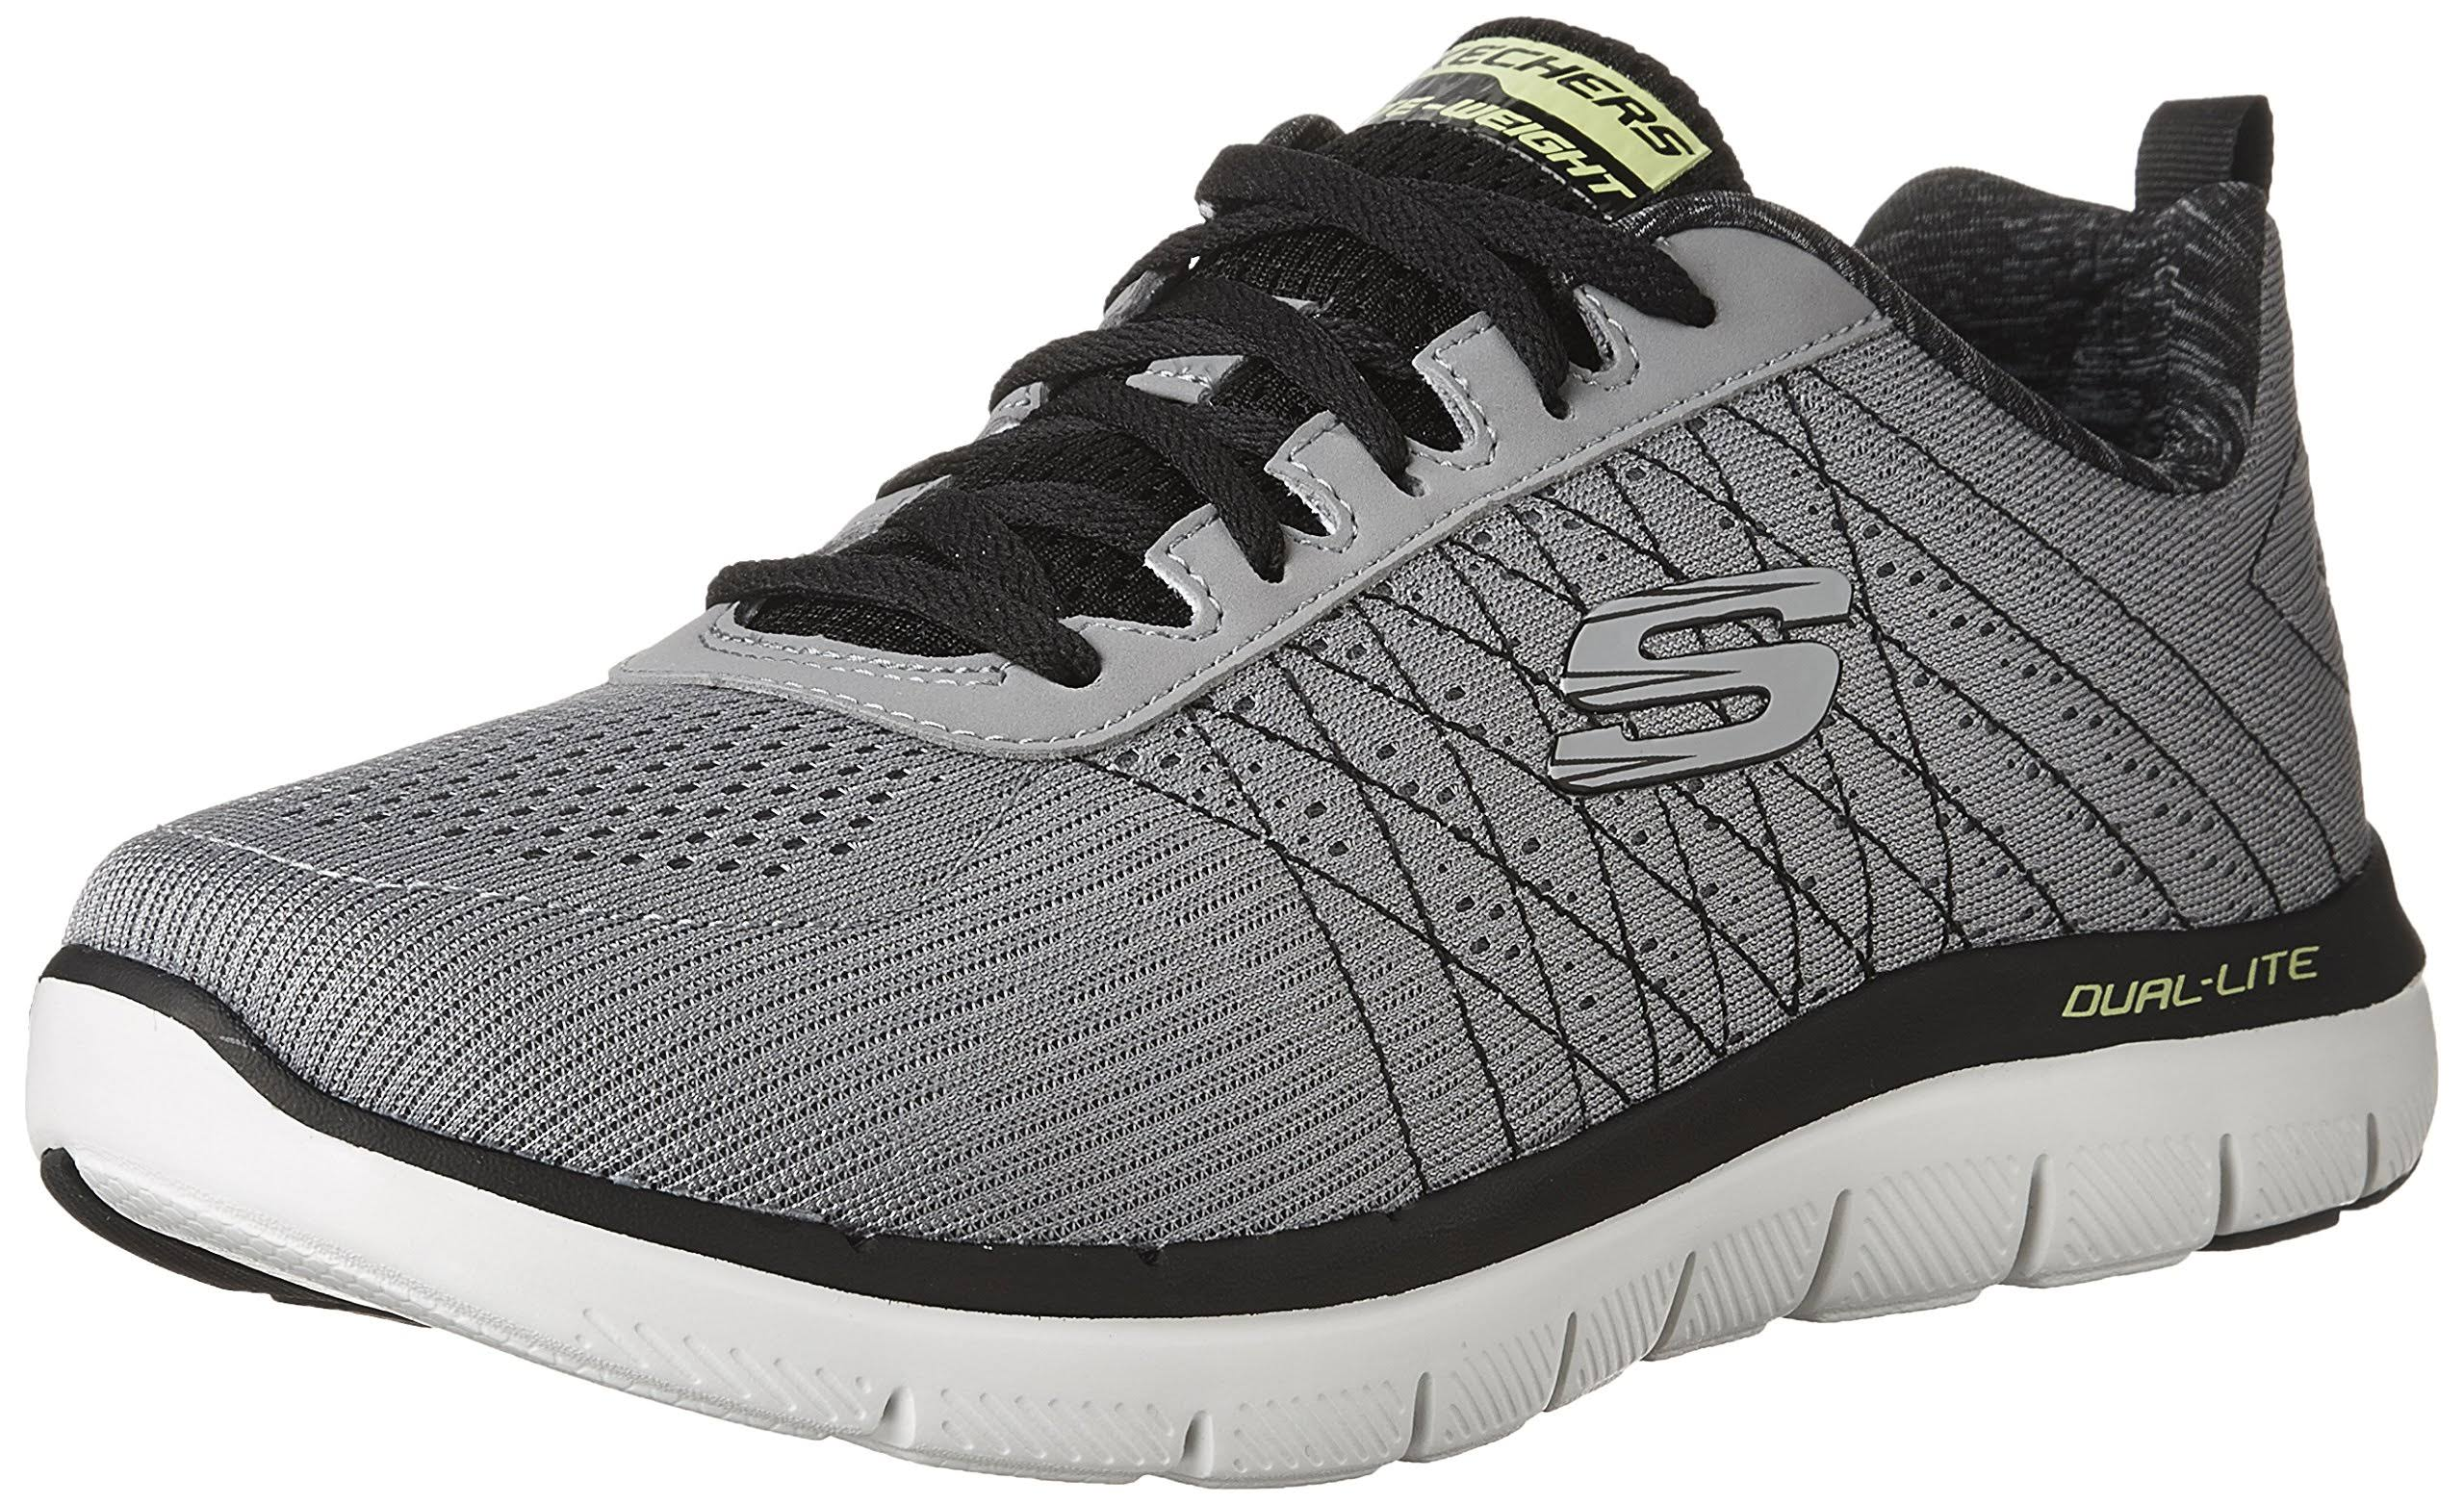 Advantage Textile Trainers Flex Skechers 0 light Size Grey The Light Sport Men's Grey Grey 7 black black 2 Happs ECqxZC